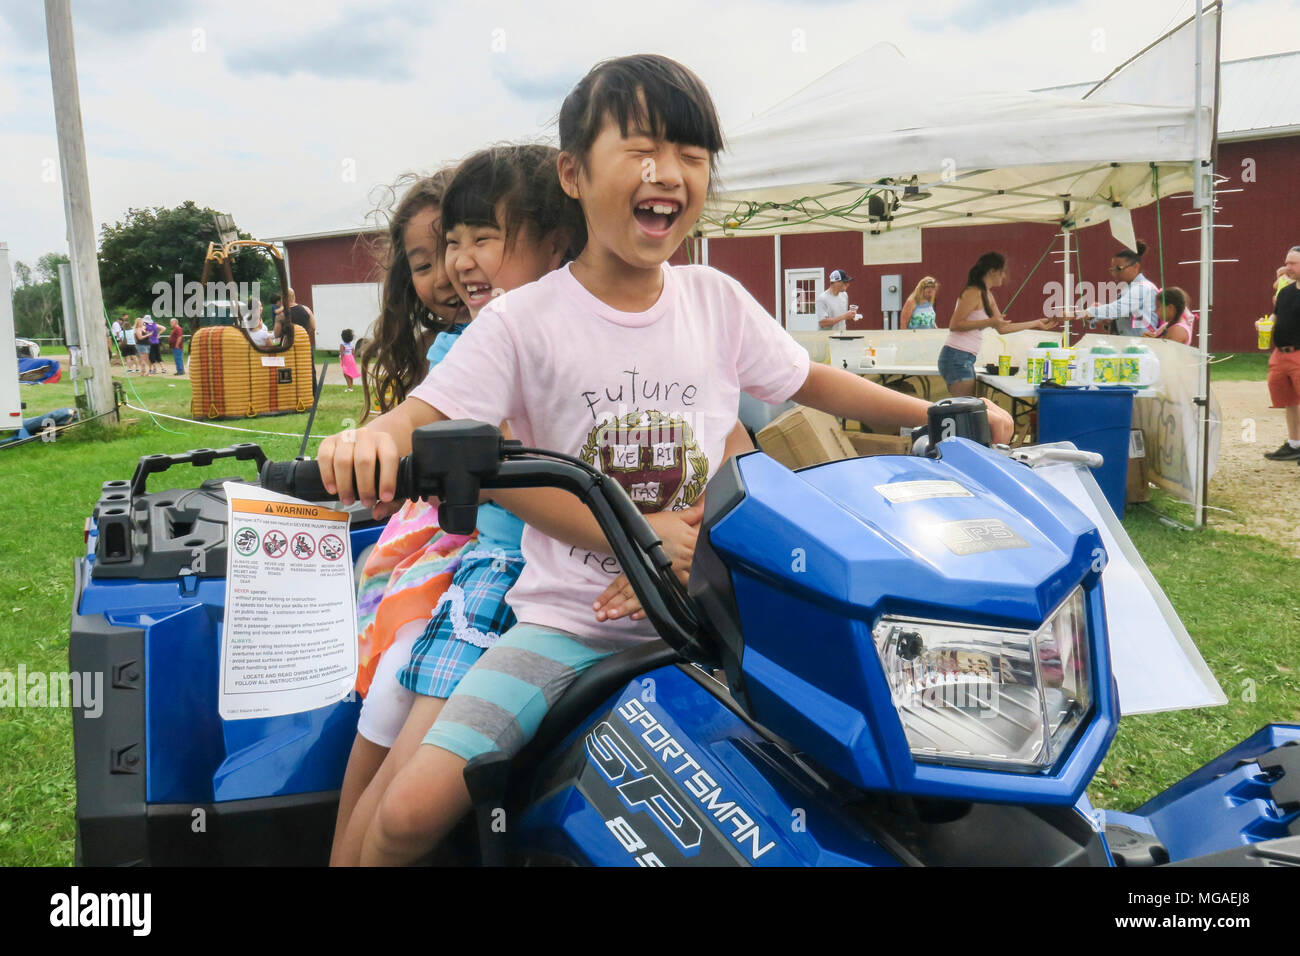 Three delighted laughing young Asian sisters sitting on a large ATV on display and a Connecticut summertime Carnival - Stock Image